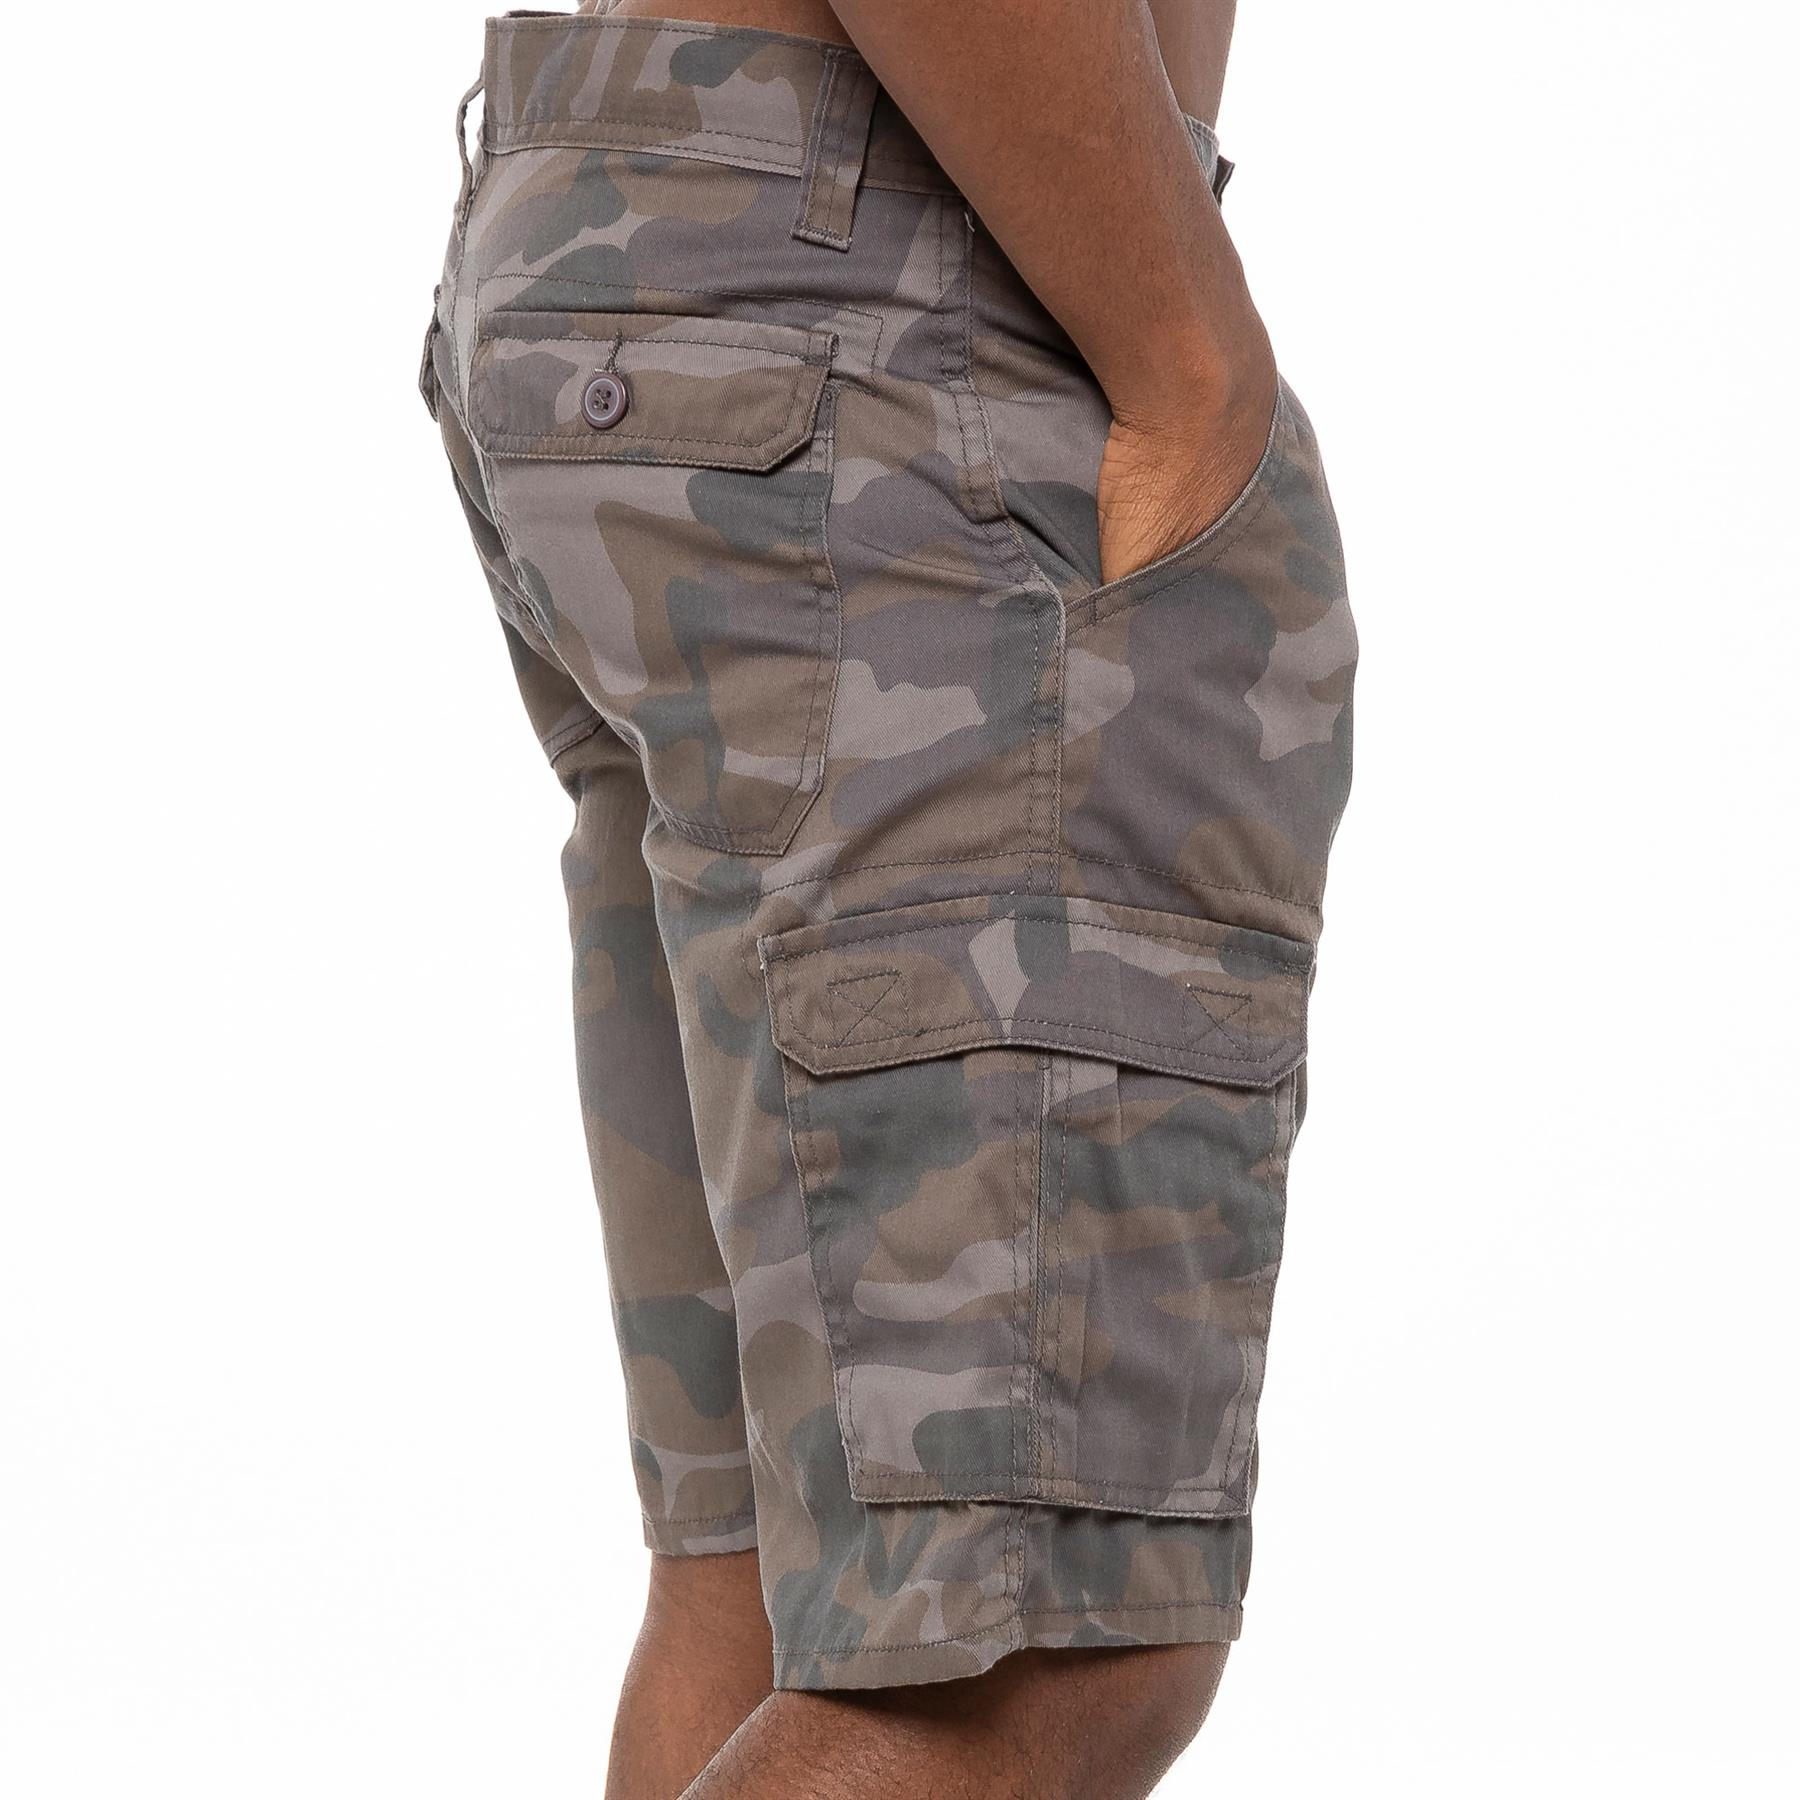 thumbnail 12 - Kruze Jeans Mens Army Combat Shorts Camouflage Cargo Casual Camo Work Half Pants